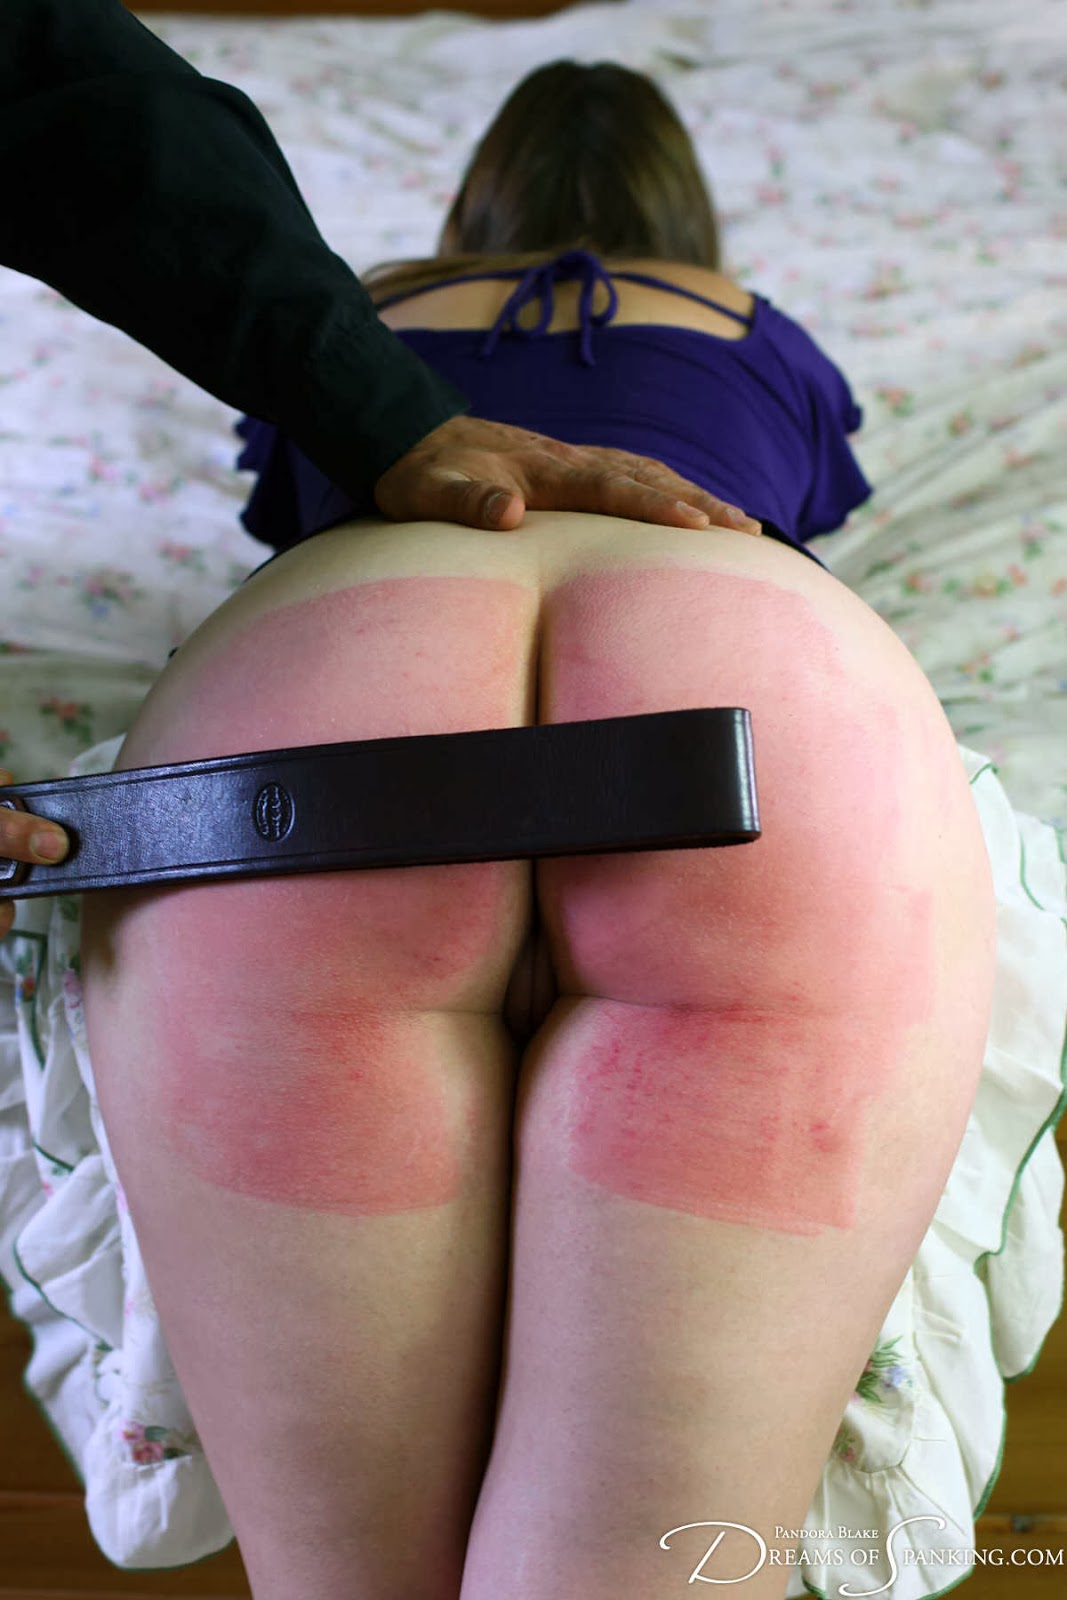 Spank wife xxx, mature blone with short hair and freckles